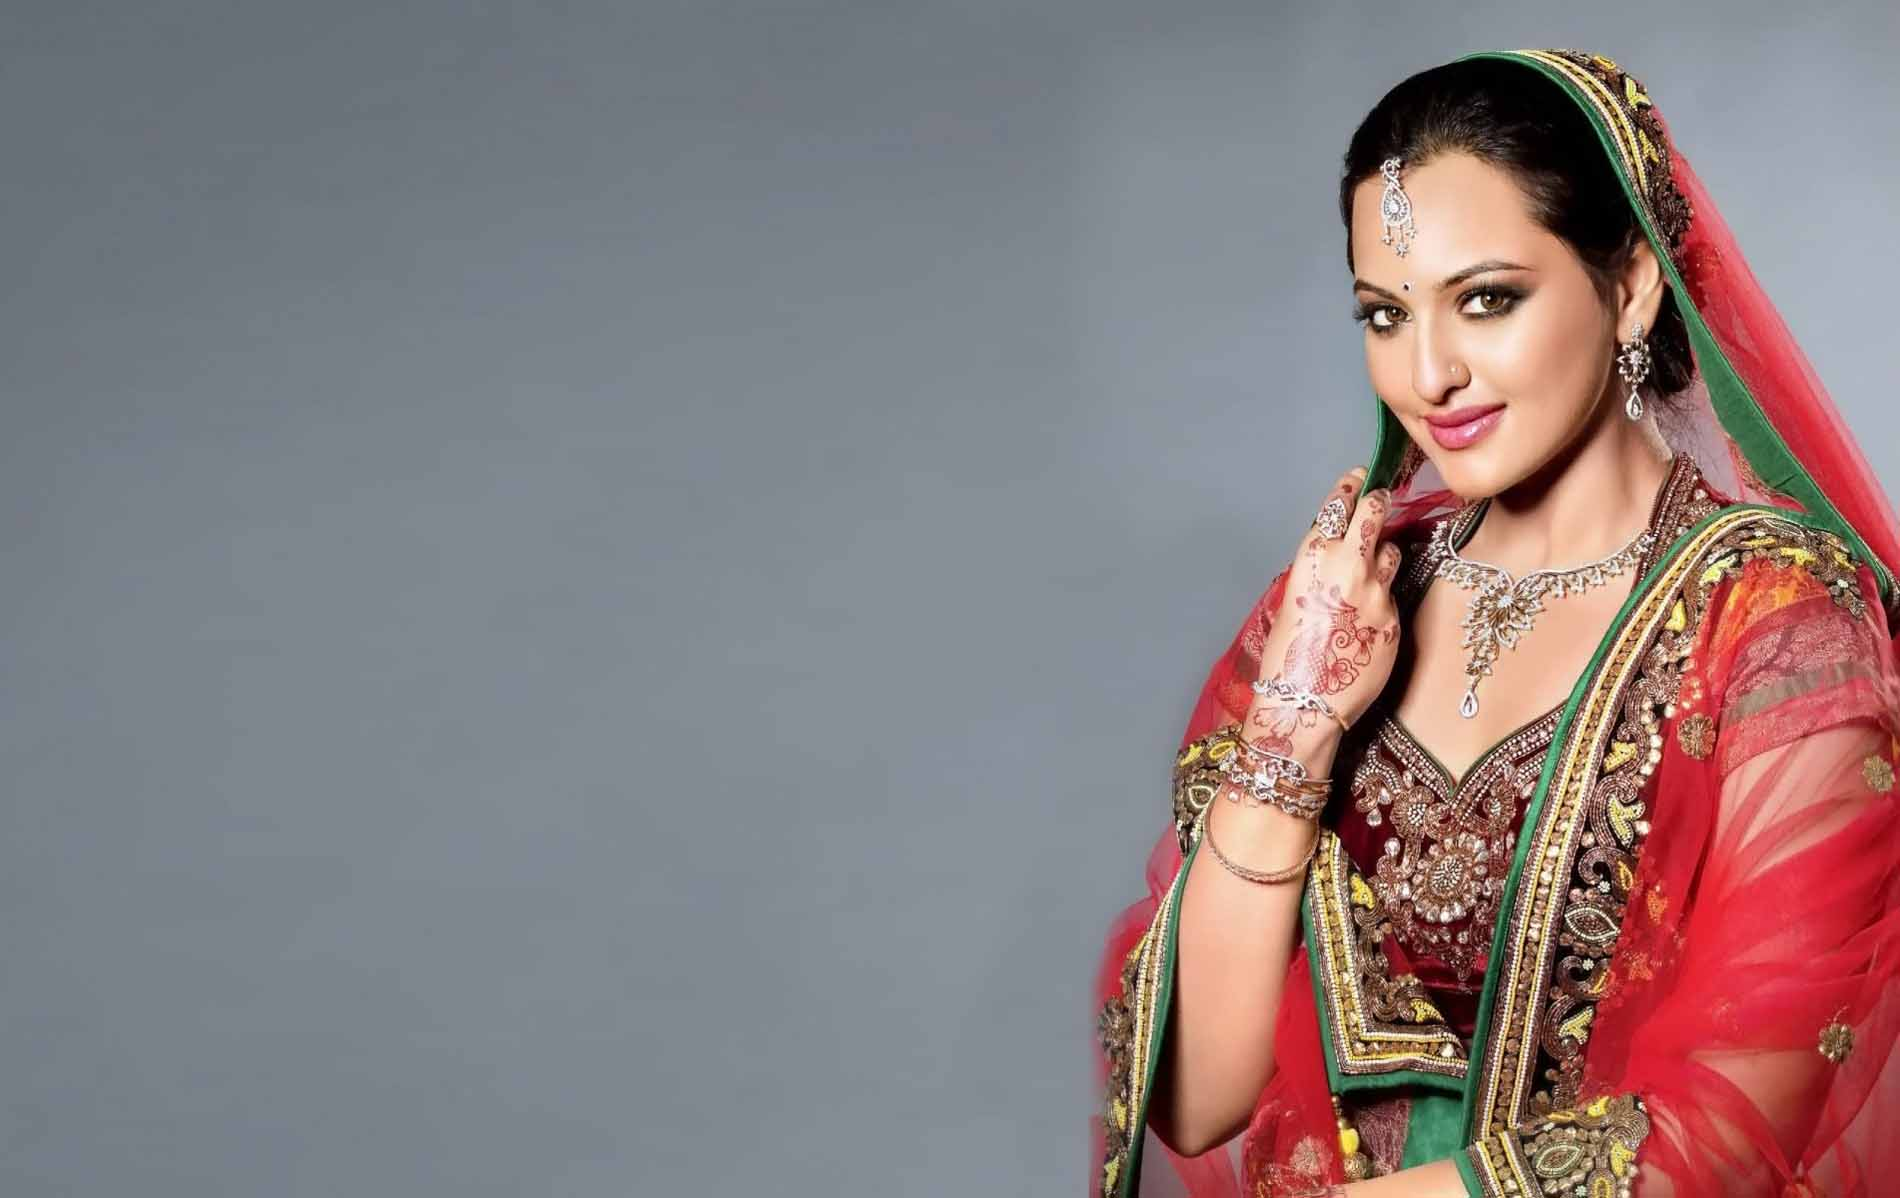 48+] Saree Actress HD Wallpapers 1080p